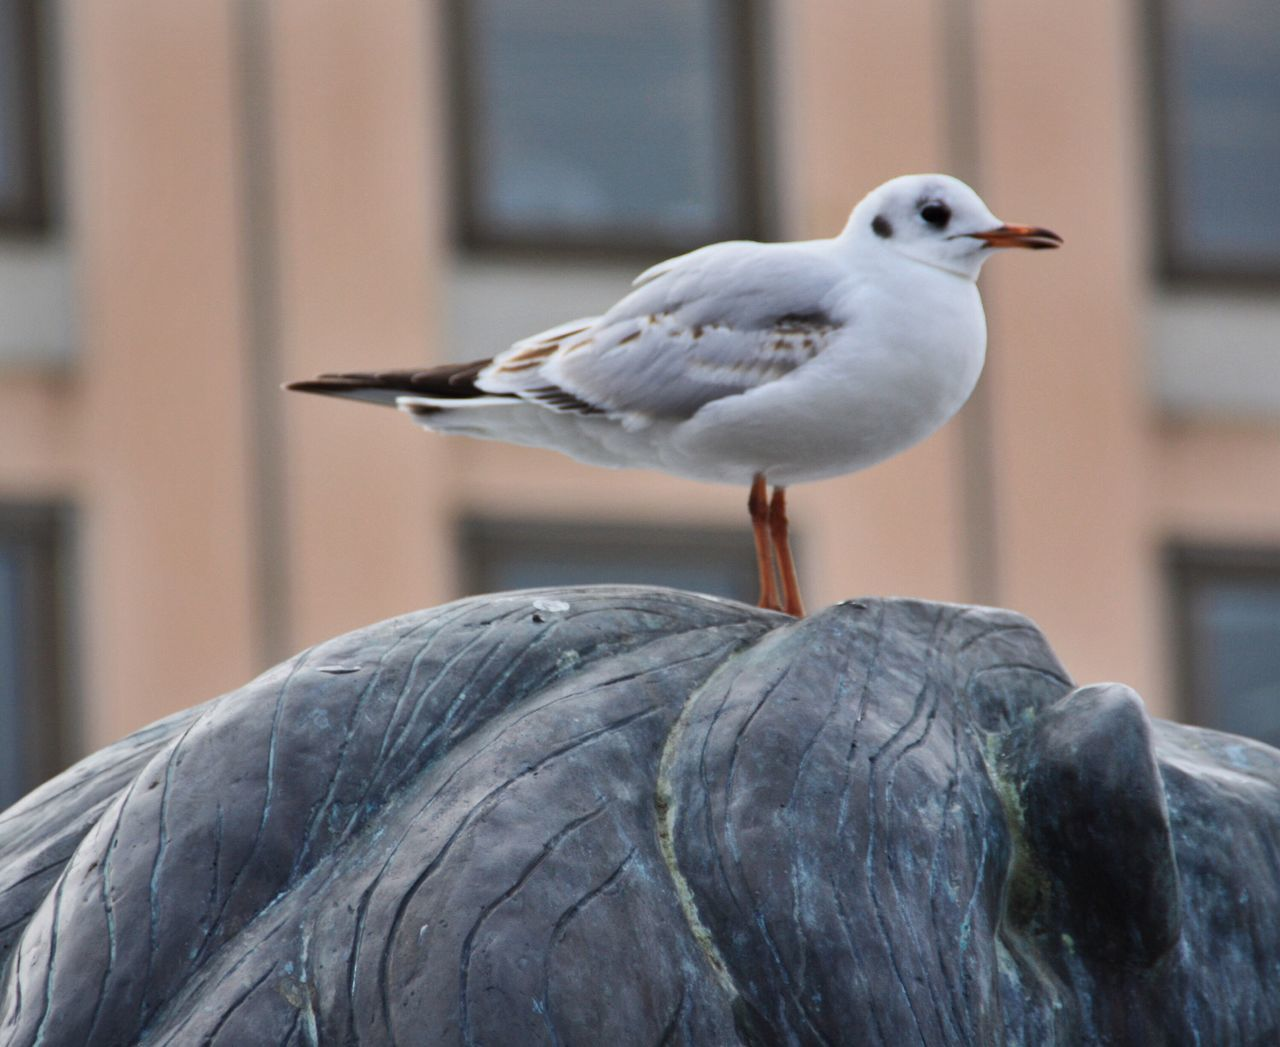 Close-Up Of Seagull Perching On Statue Against Building